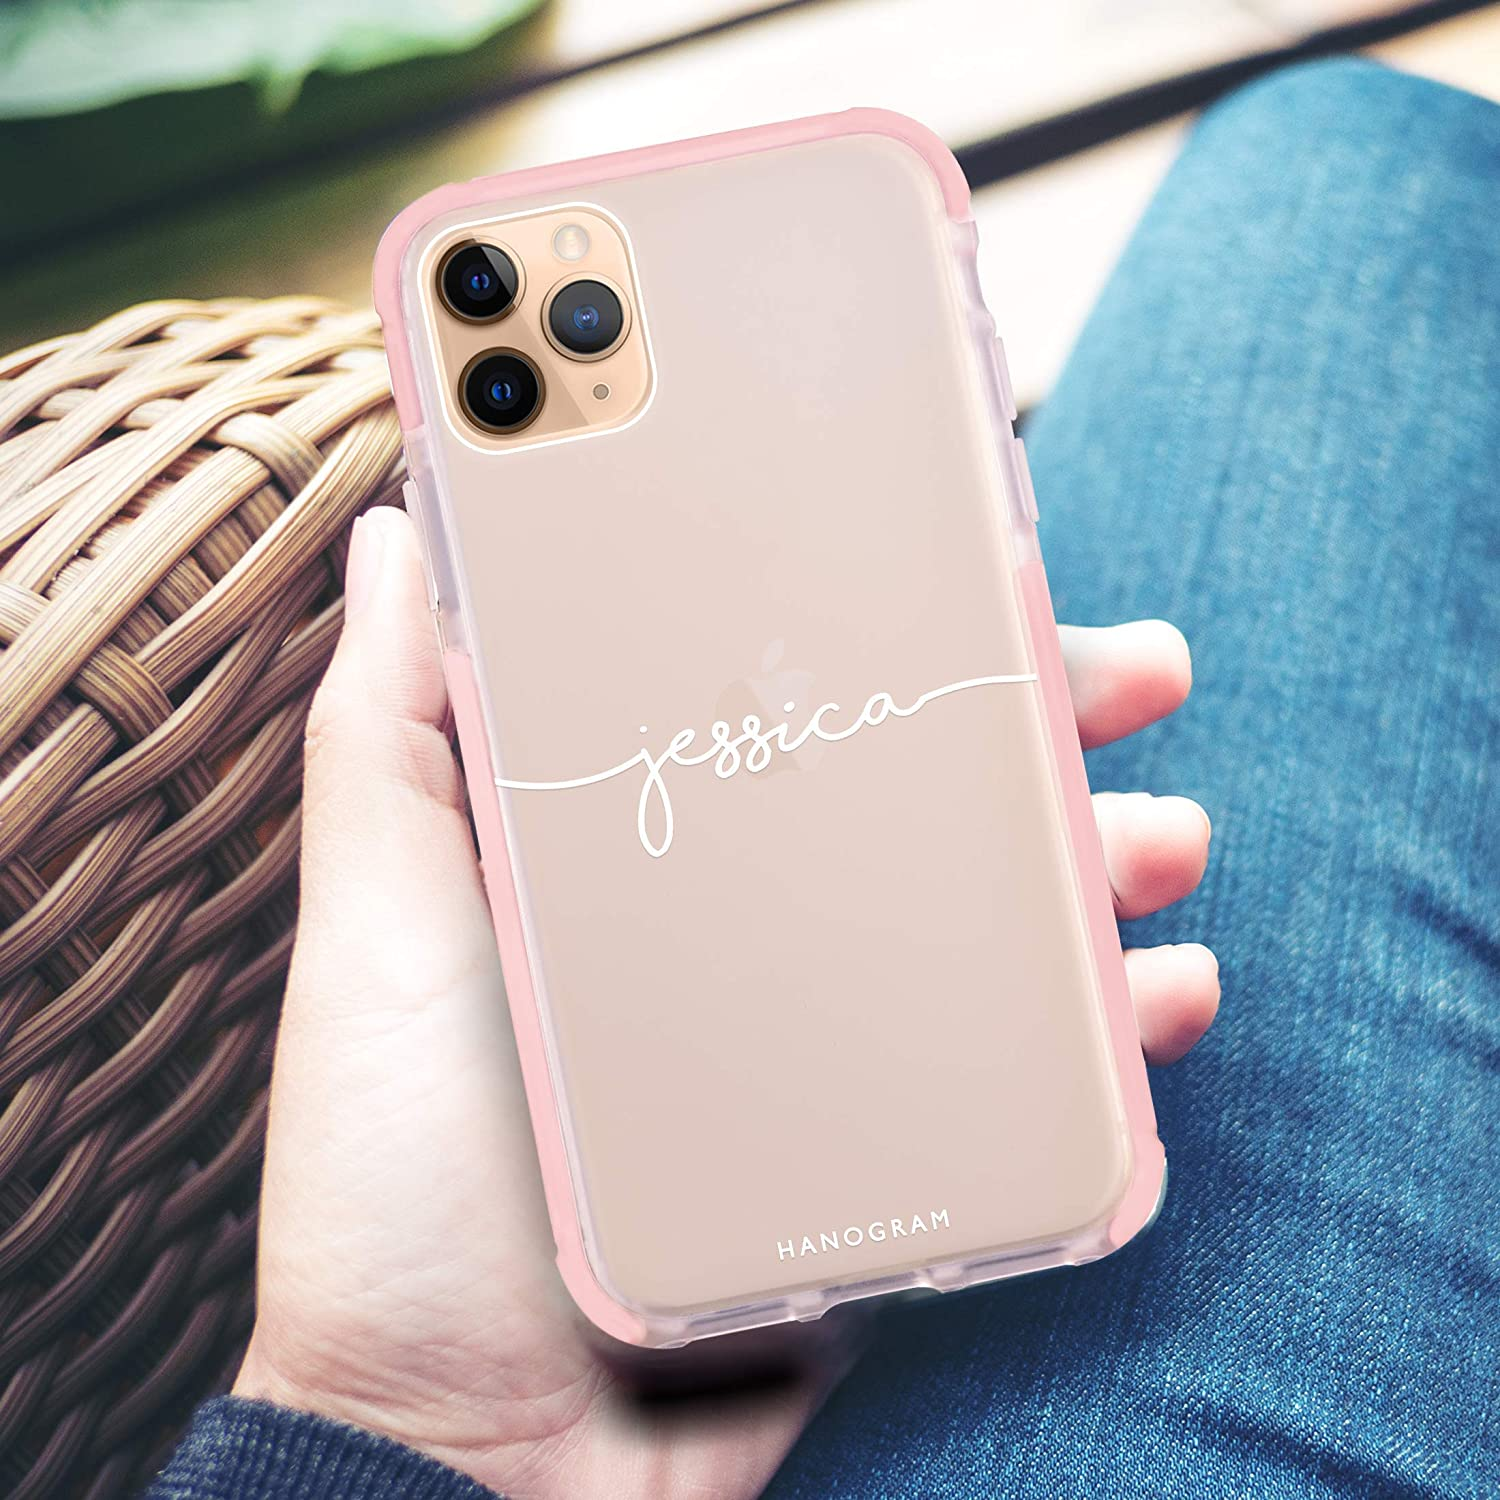 iPhone 11 Pro Max Custom Your Name Handwritten Frosted Bumper Case Personalized Phone Case iPhone 11 iPhone 11 Pro Hanogram Case